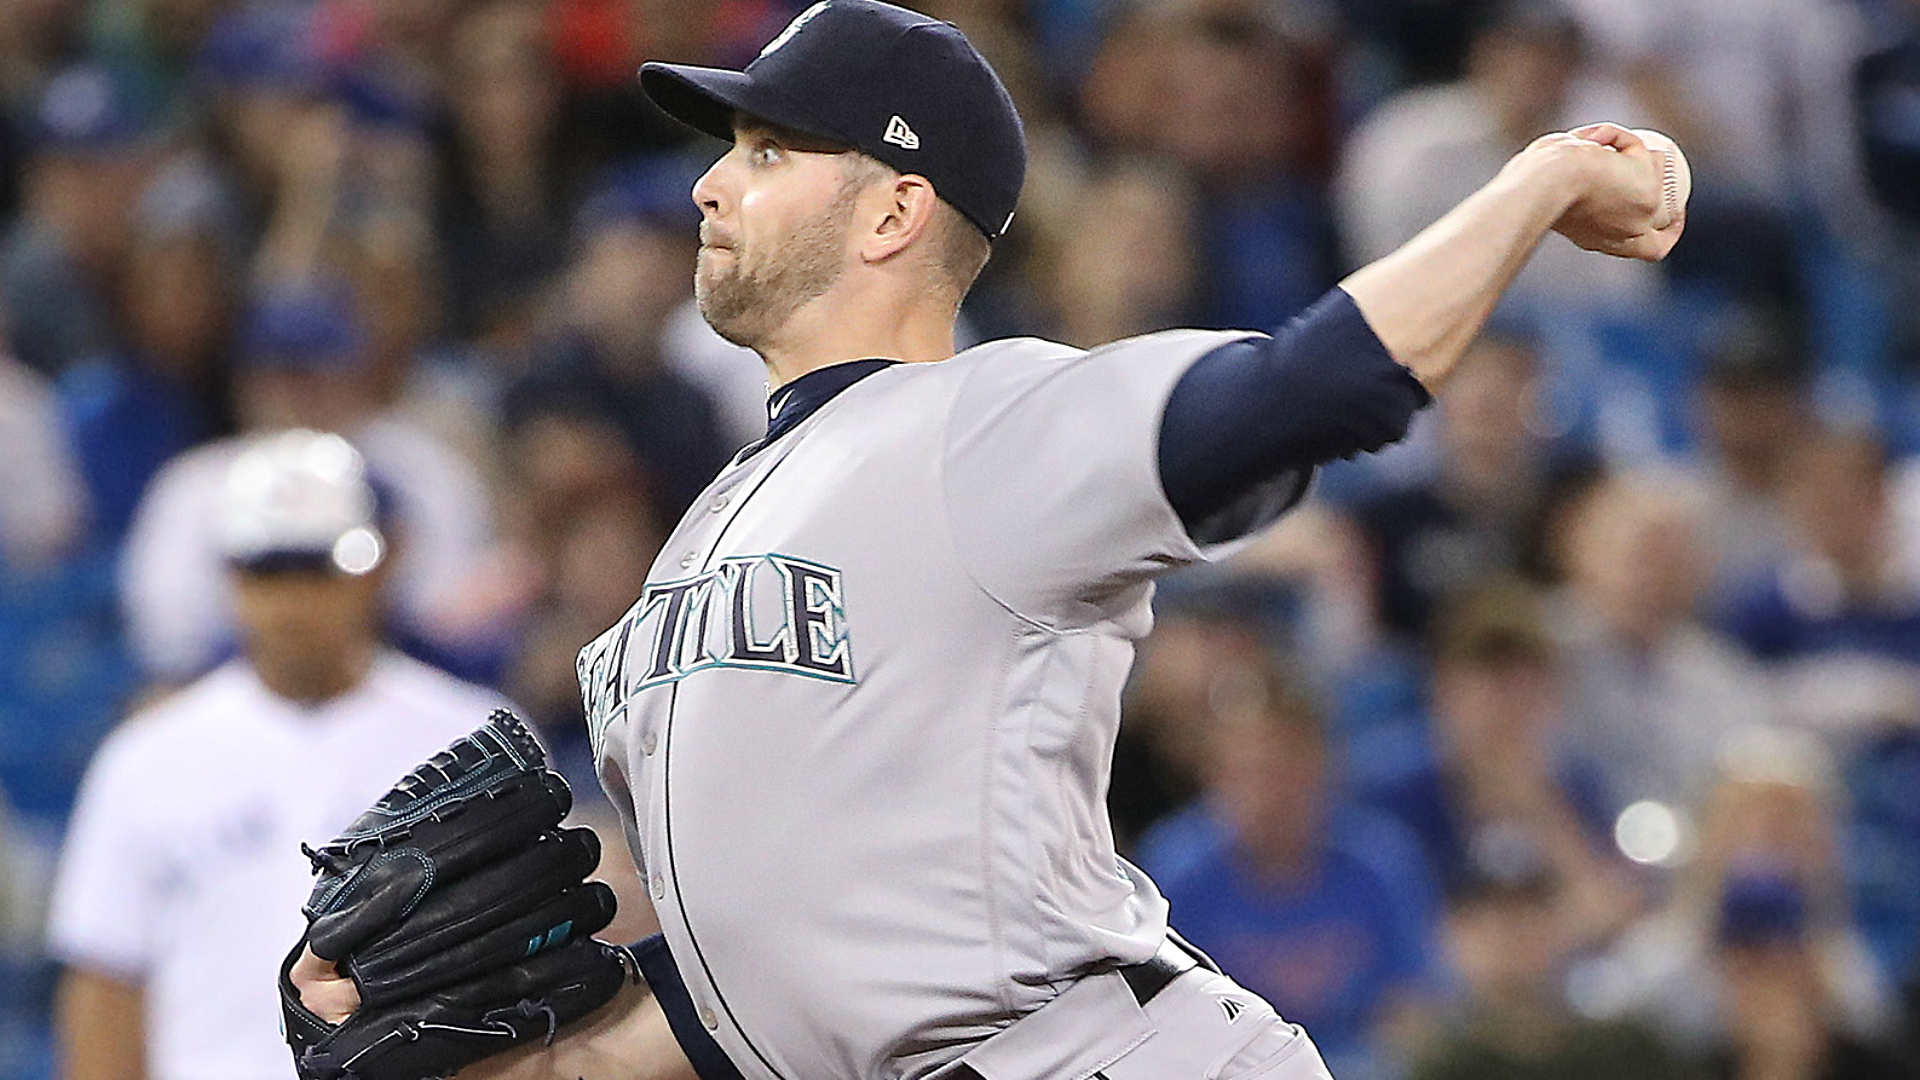 James Paxton's no-hitter confirms he's the ace the Mariners need